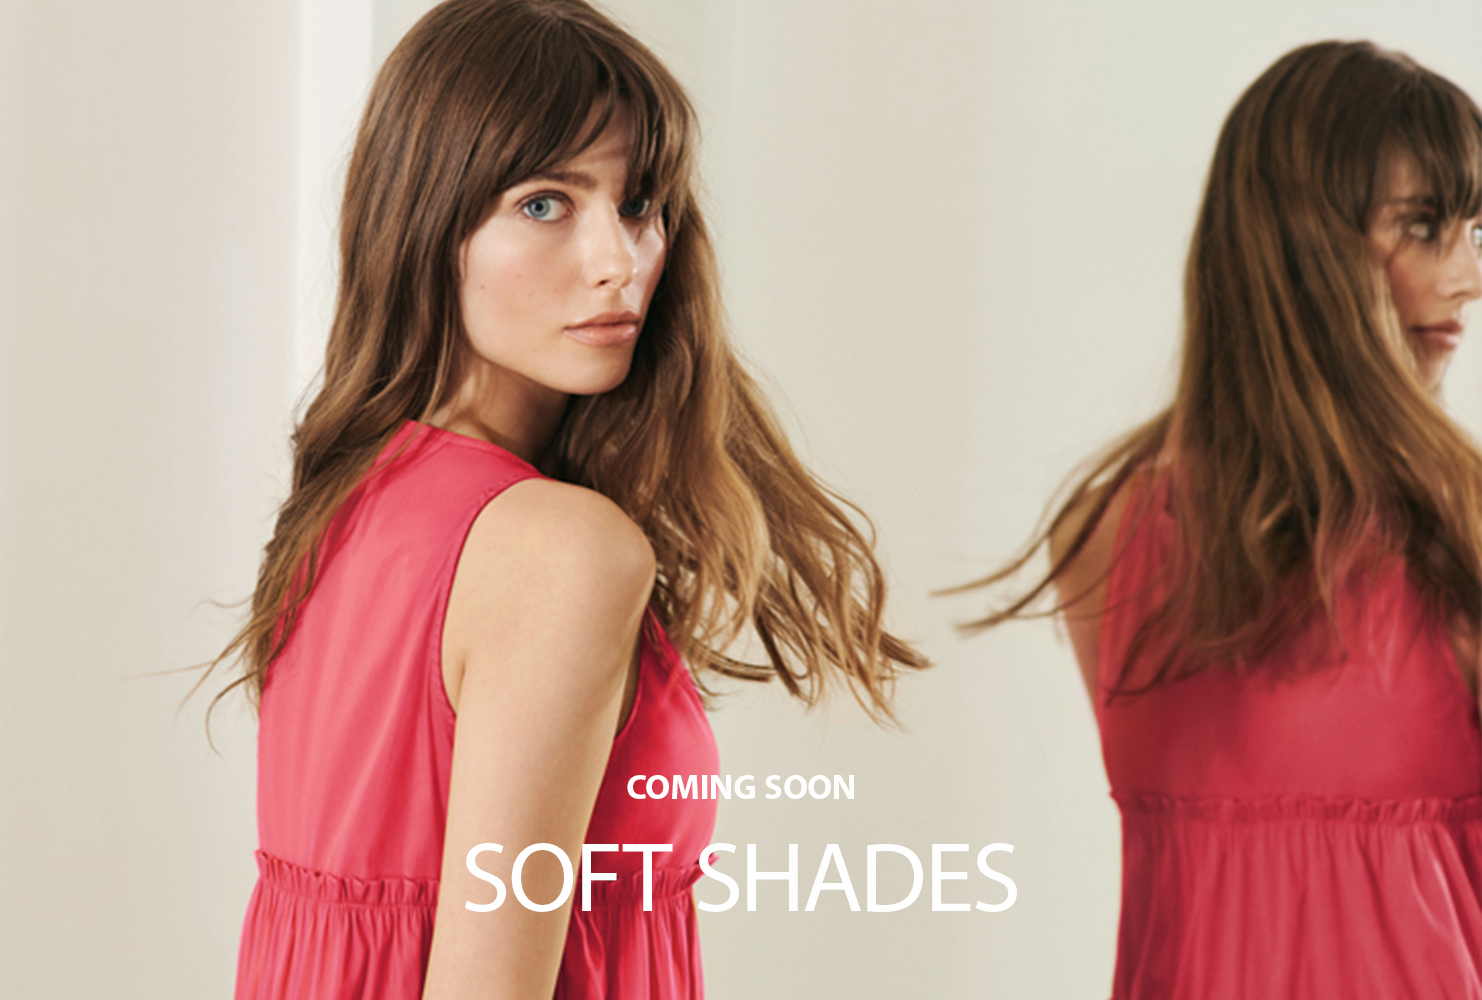 Coming soon Soft Shades